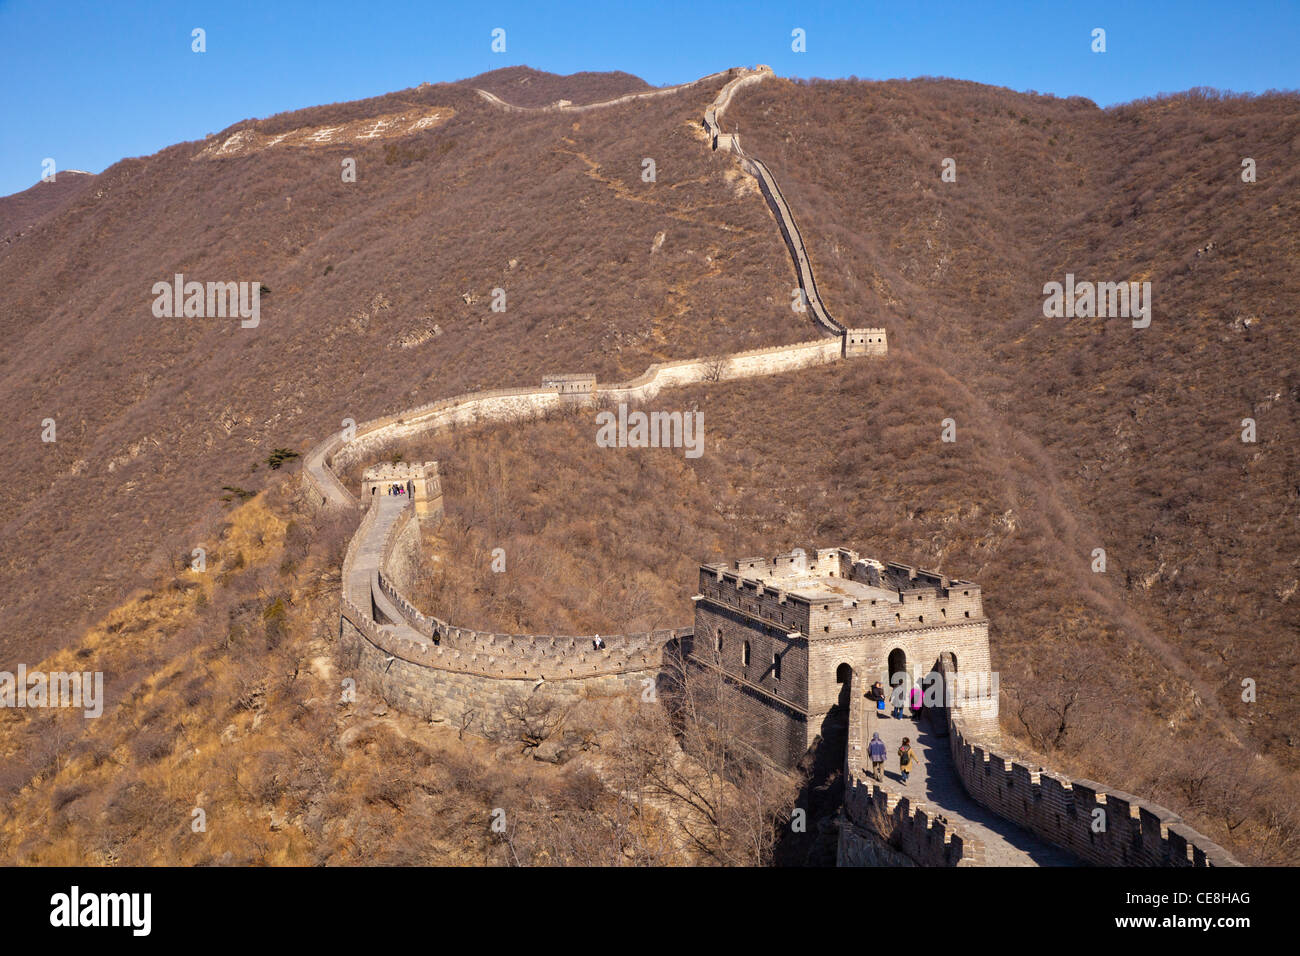 The restored section of the Great Wall of China at Mutianyu, near Beijing, taken in late winter conditions. - Stock Image